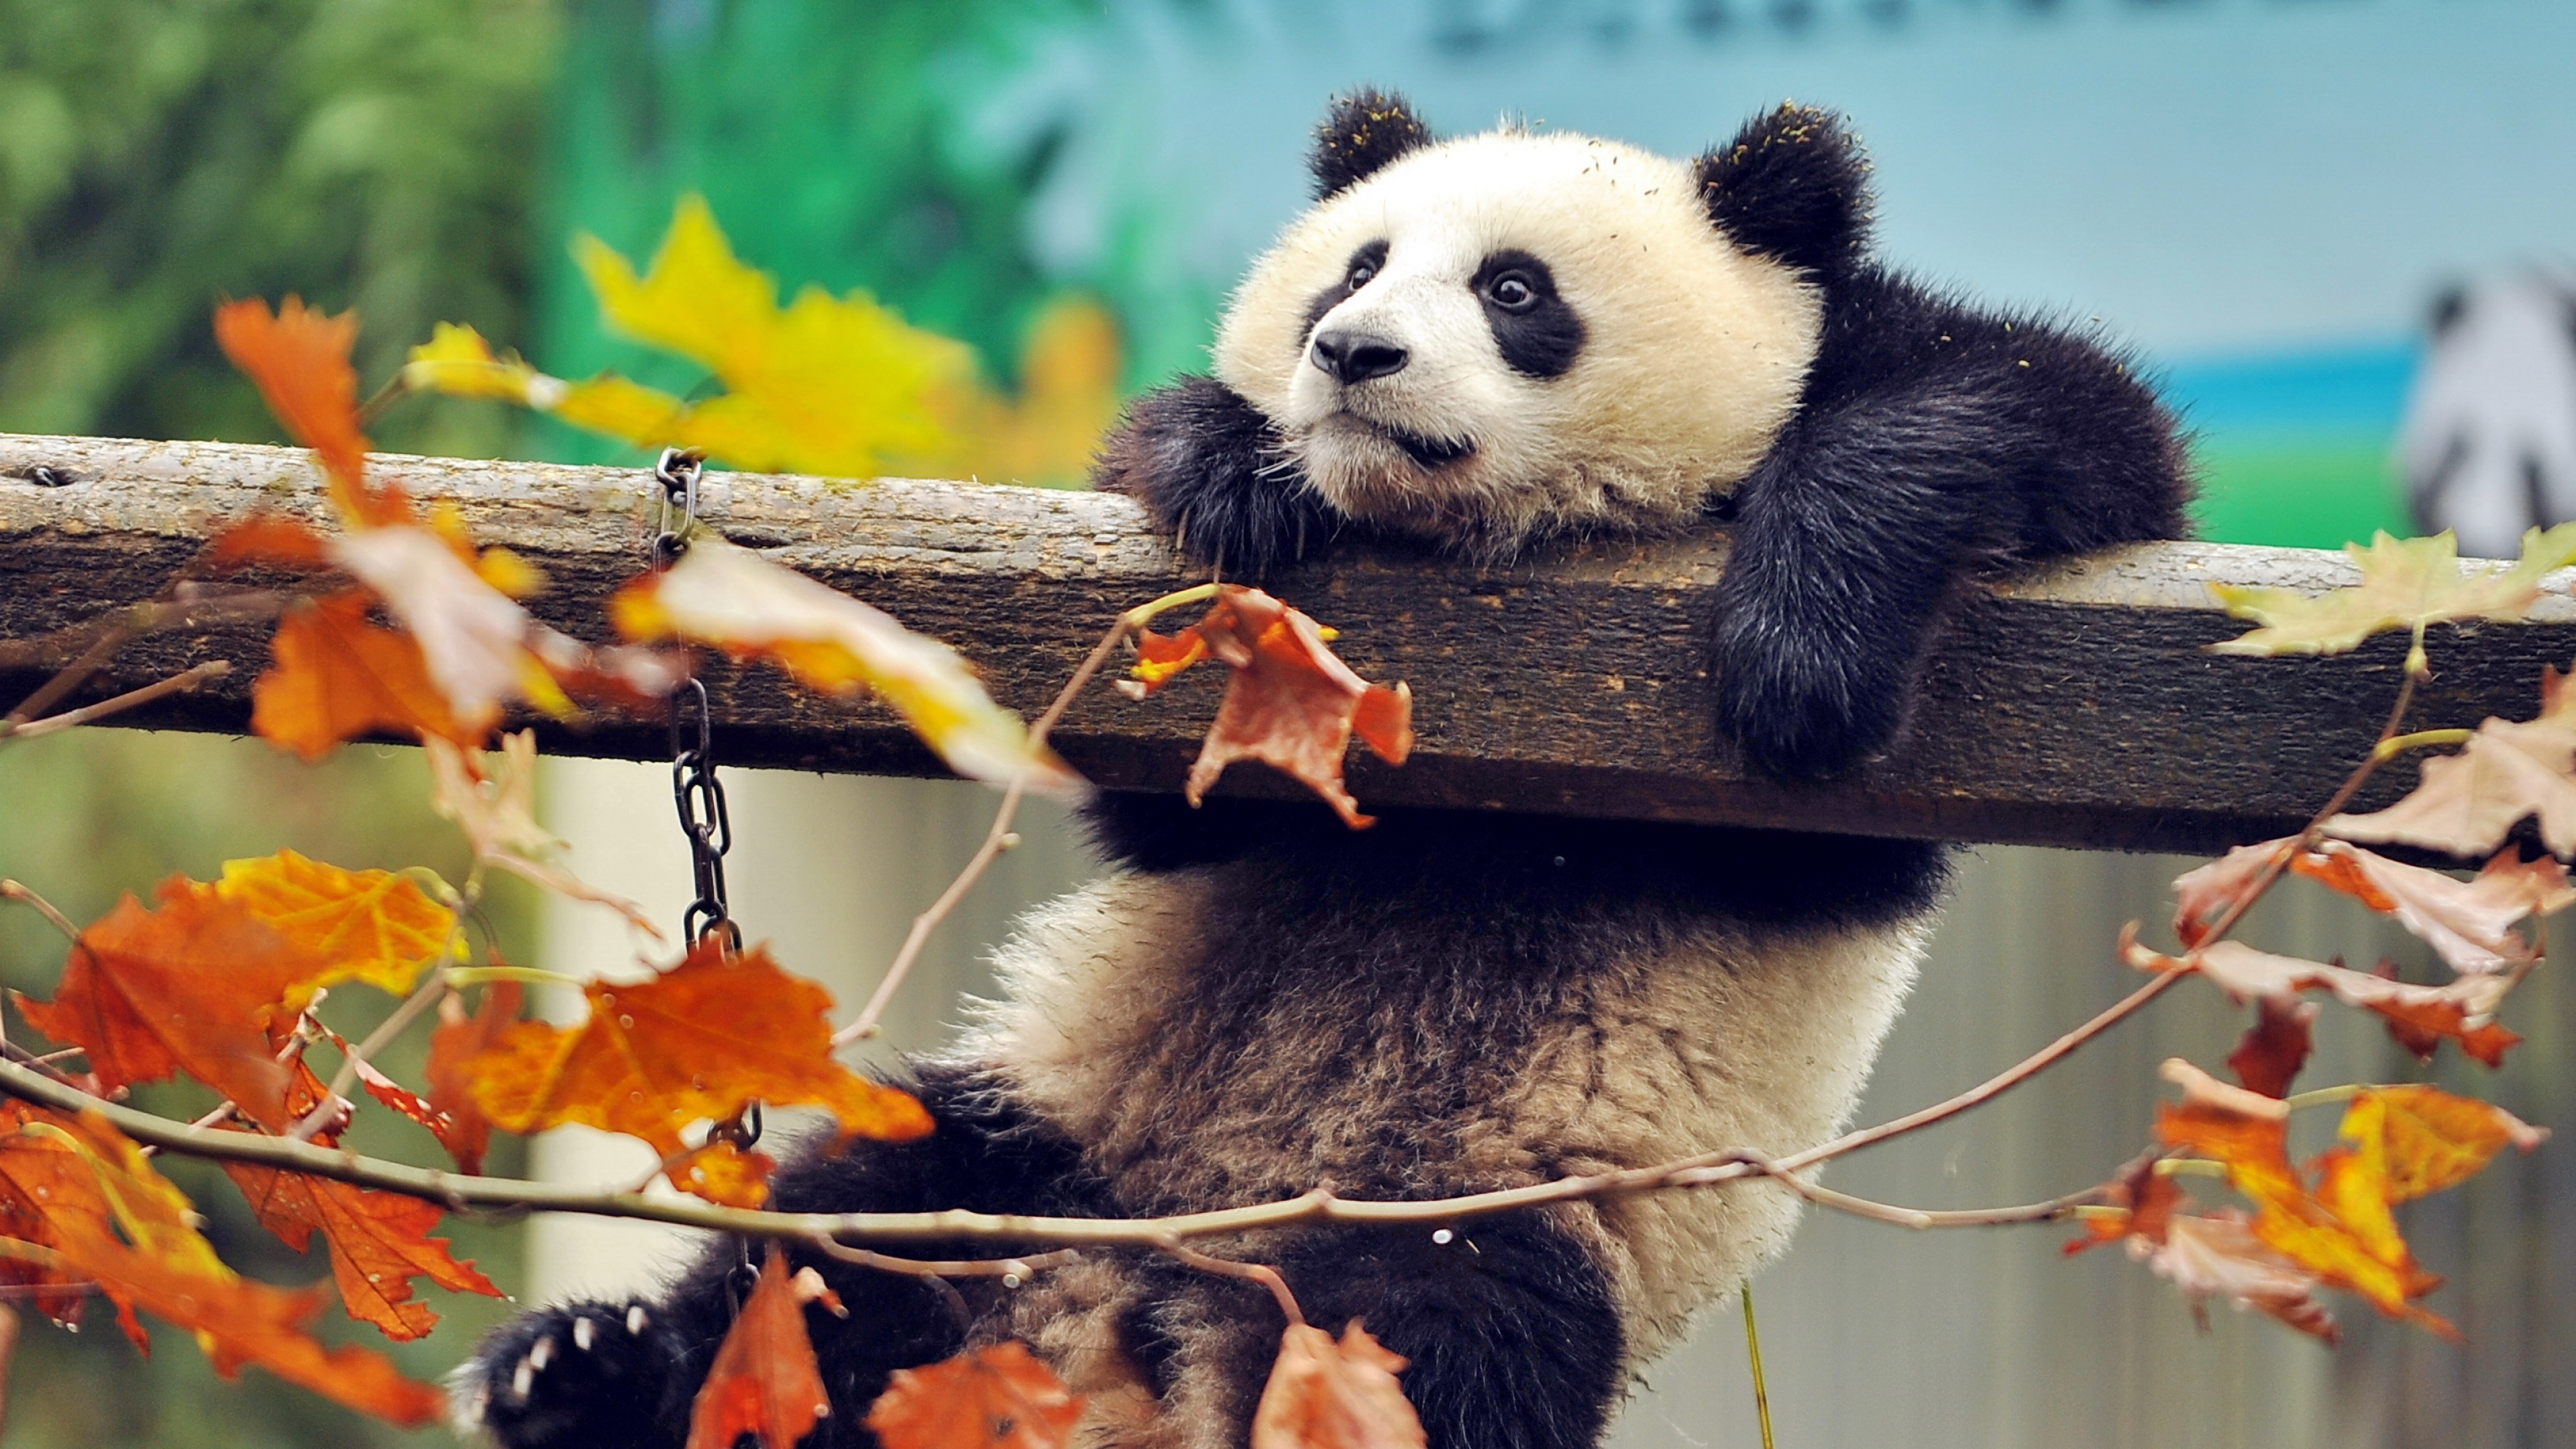 Cute Panda, HD Animals, 4k Wallpapers, Images, Backgrounds ...